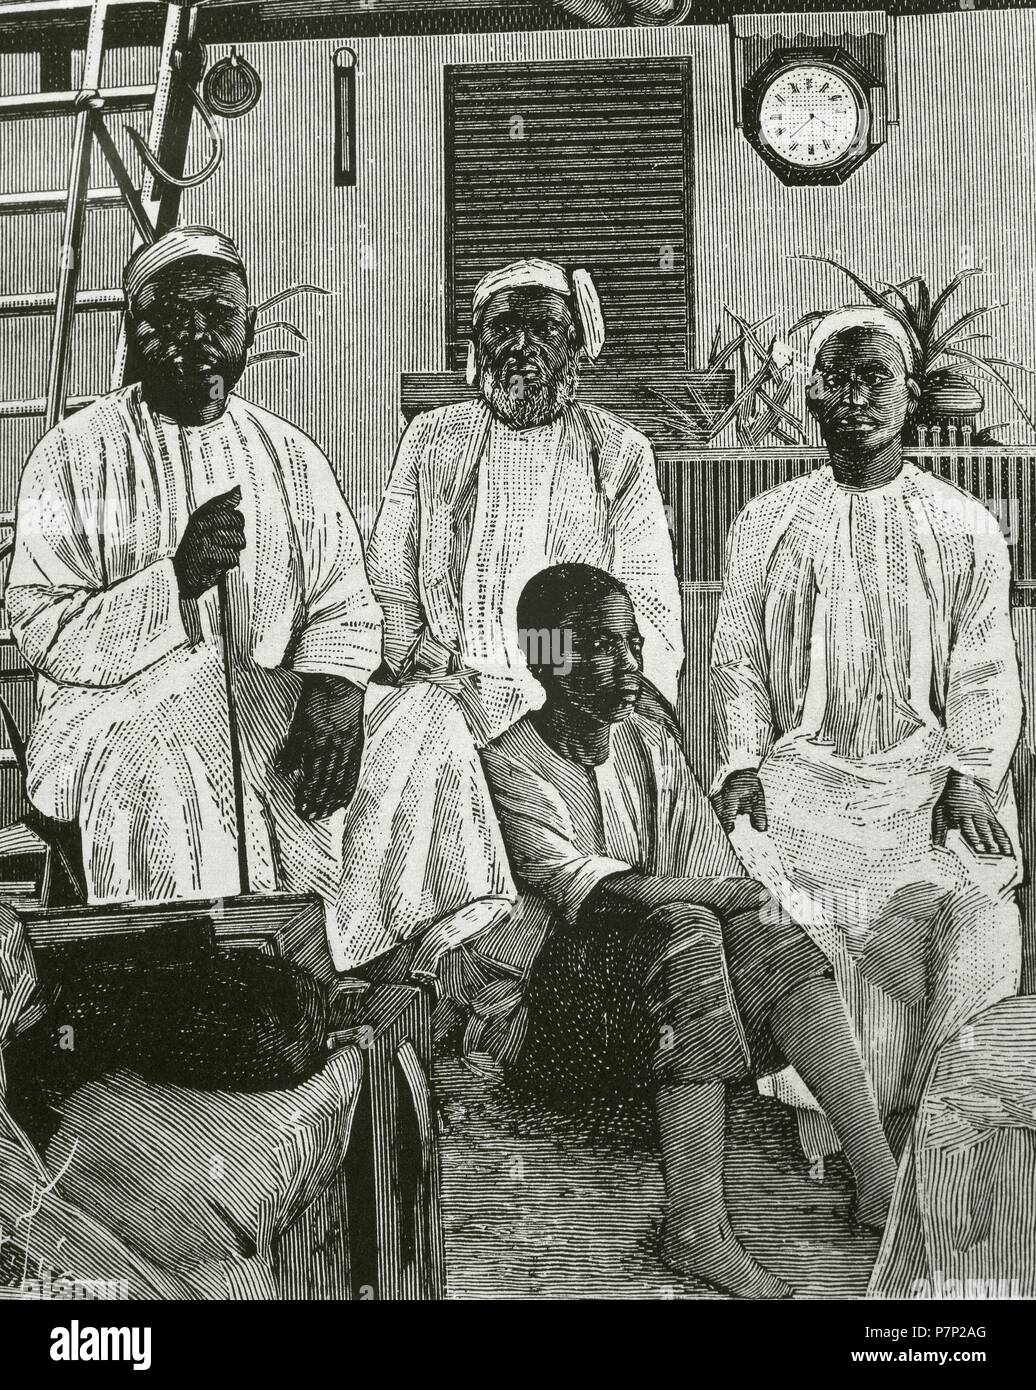 Tippu Tip (1832-1905). Swahili-Zanzibari slave trader. An ivory trader, explorer, plantation owner and governor. Tippu Tip with his collaborators. Engraving. 'Les Grands Dossiers de l'Illustration'. - Stock Image